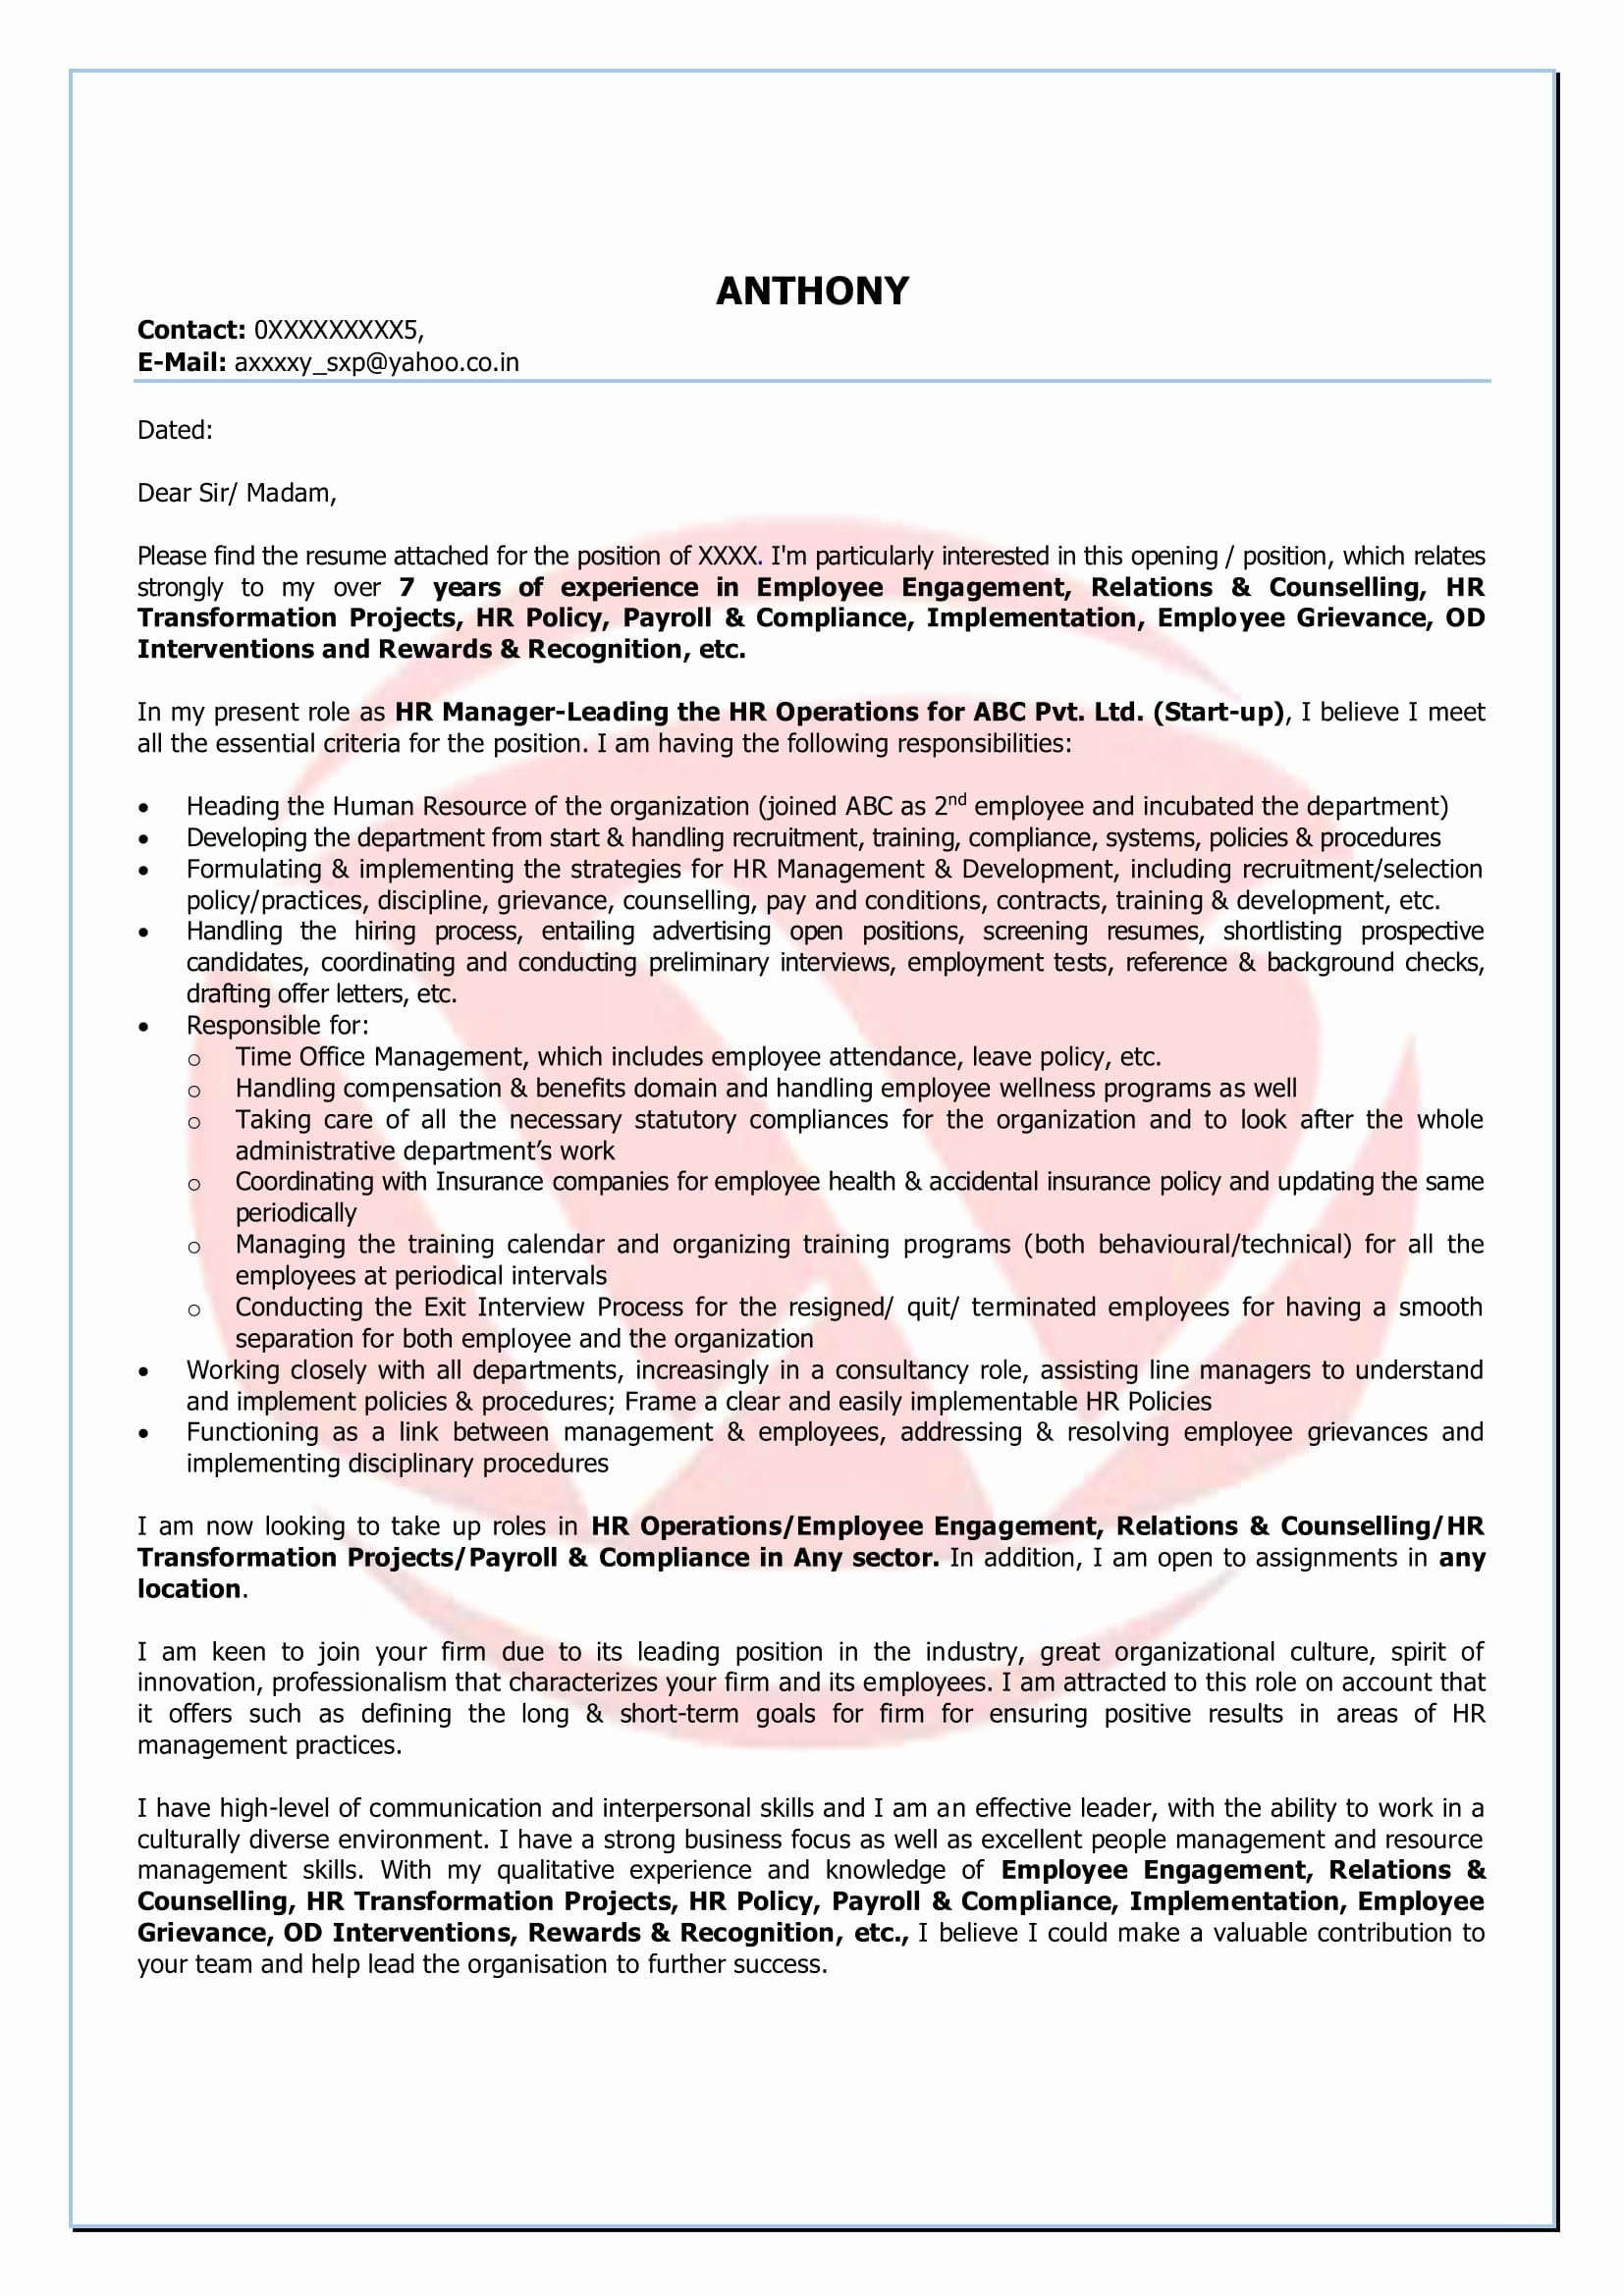 Mergers and Acquisitions Resume Template - Mergers and Inquisitions Resume Template Inspirationa Mergers and